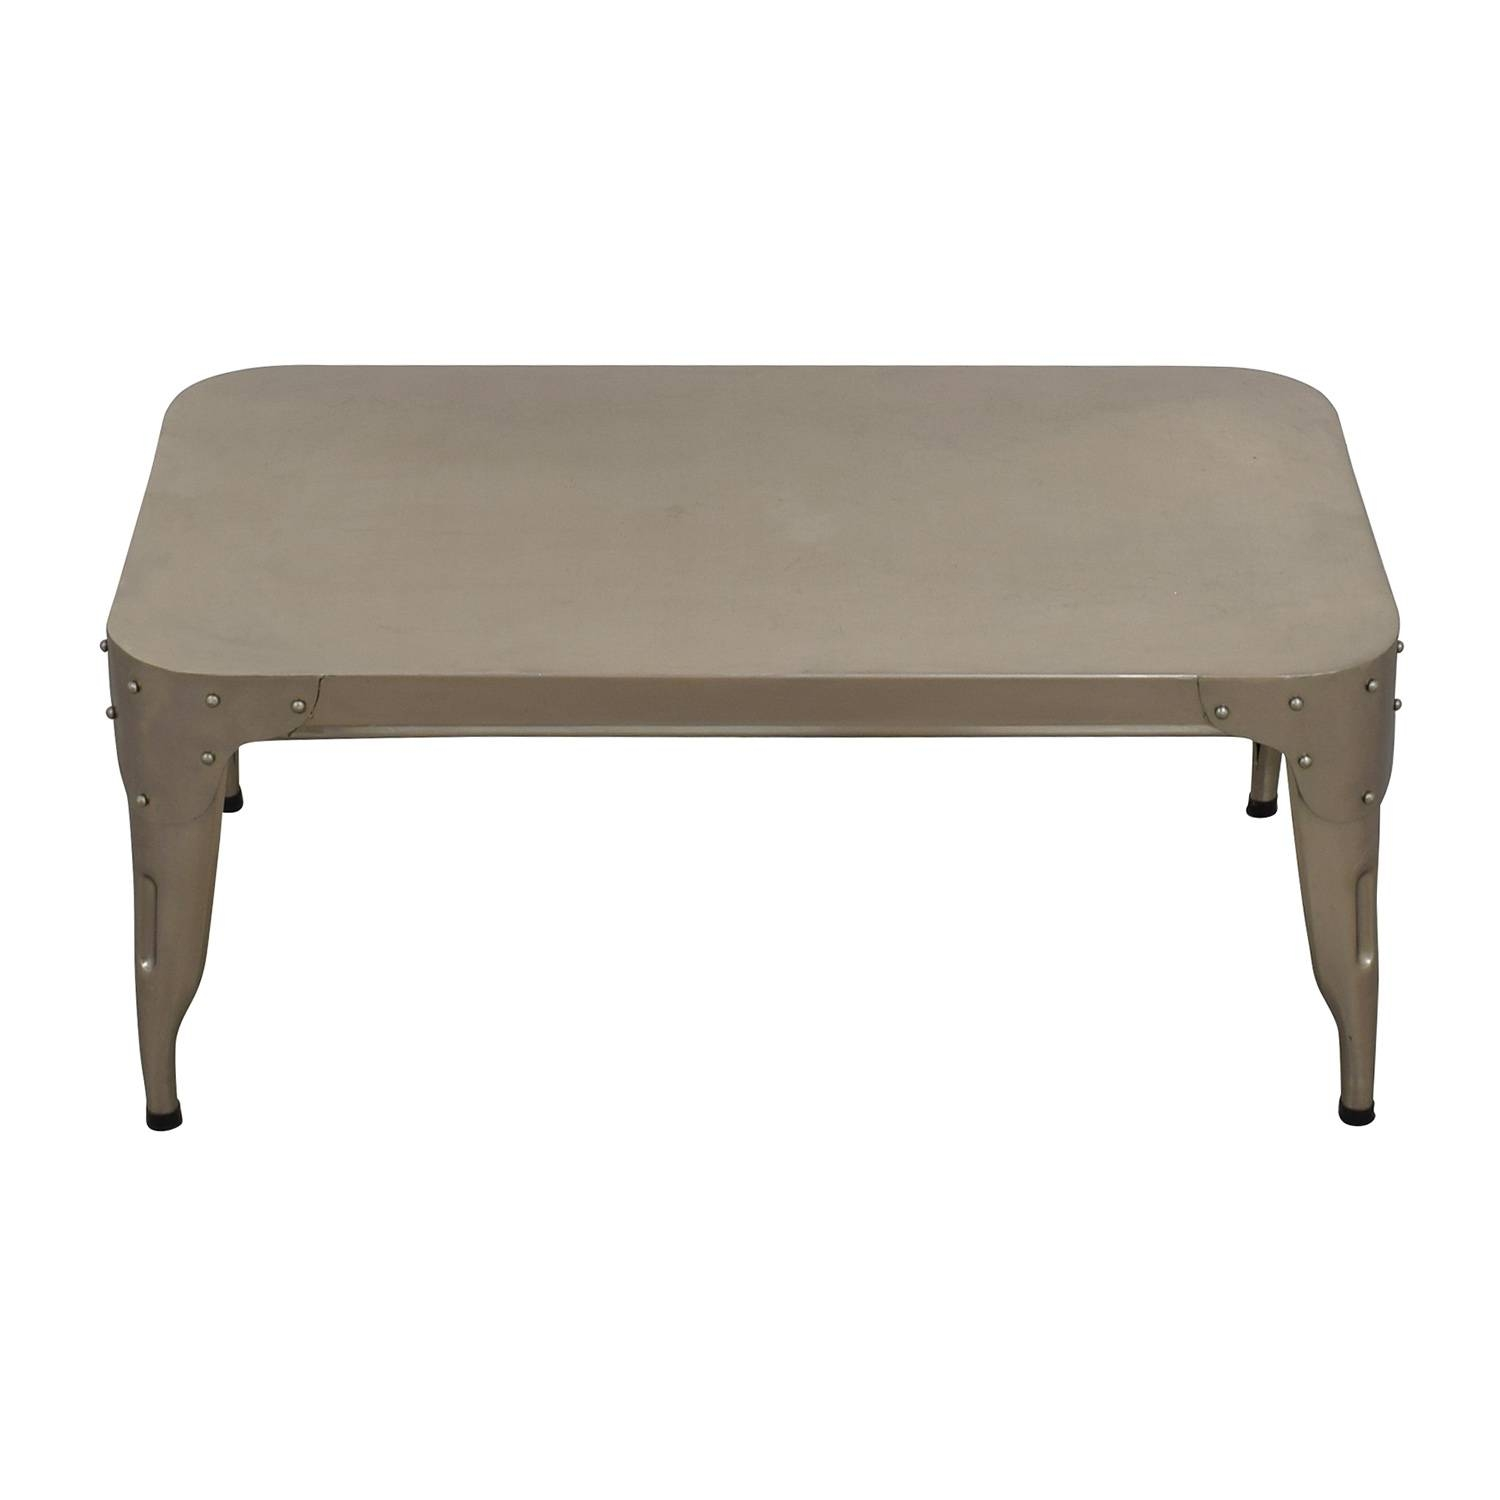 68% Off - Joss & Main Joss & Main Holyoke Bunching Coffee Table with regard to Joss And Main Coffee Tables (Image 7 of 30)